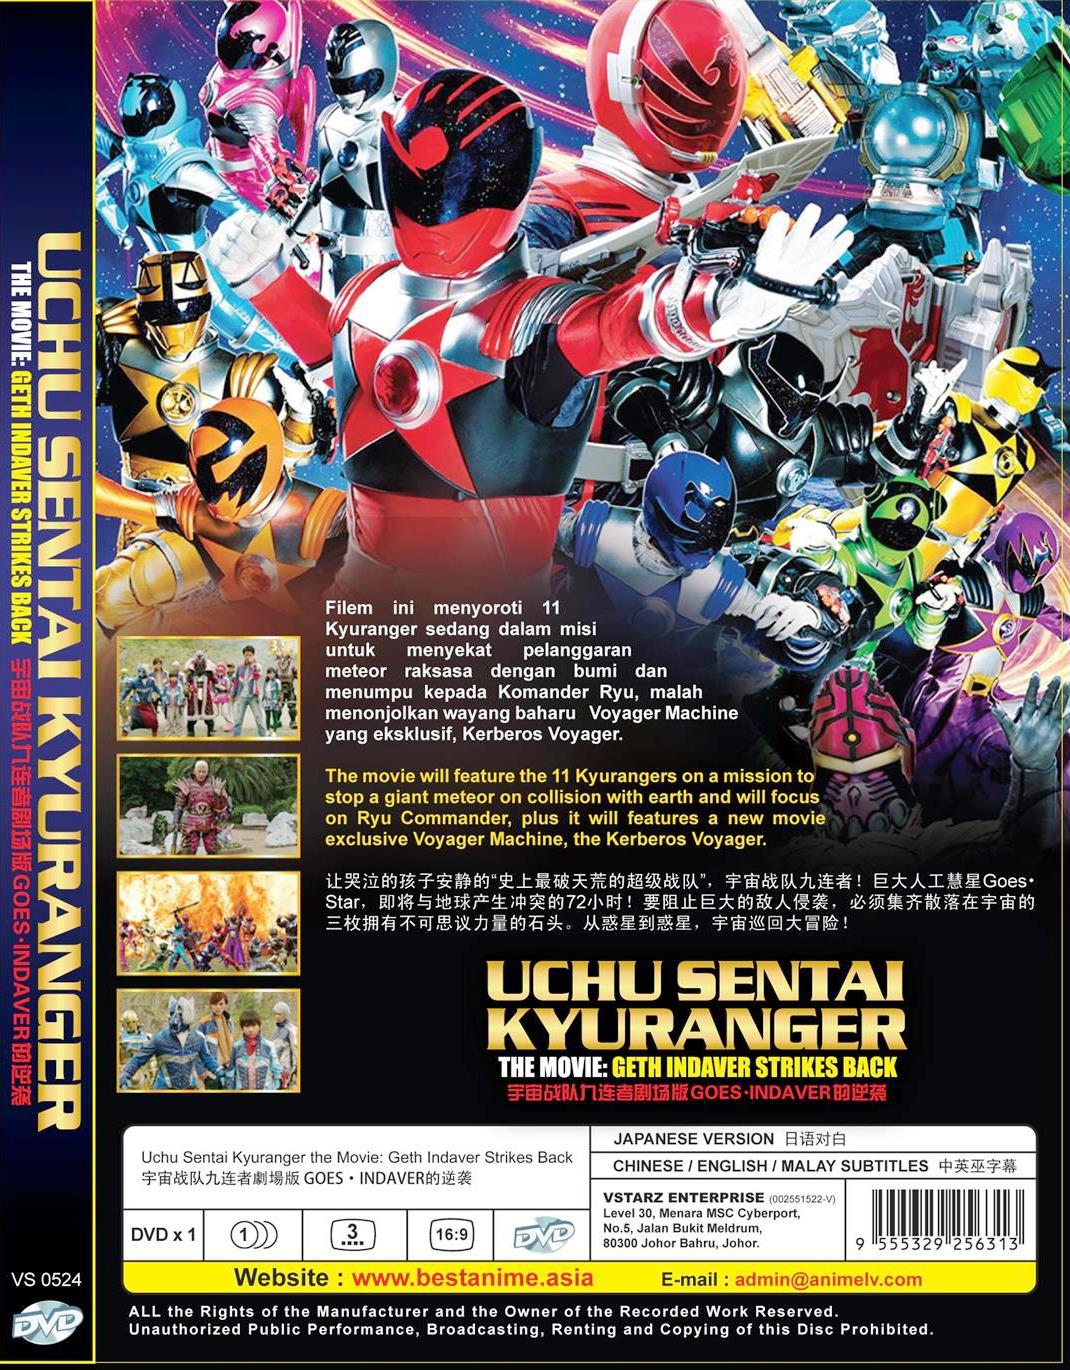 Uchu Sentai Kyuranger The Movie Geth Indaver Strikes Back Anime DVD